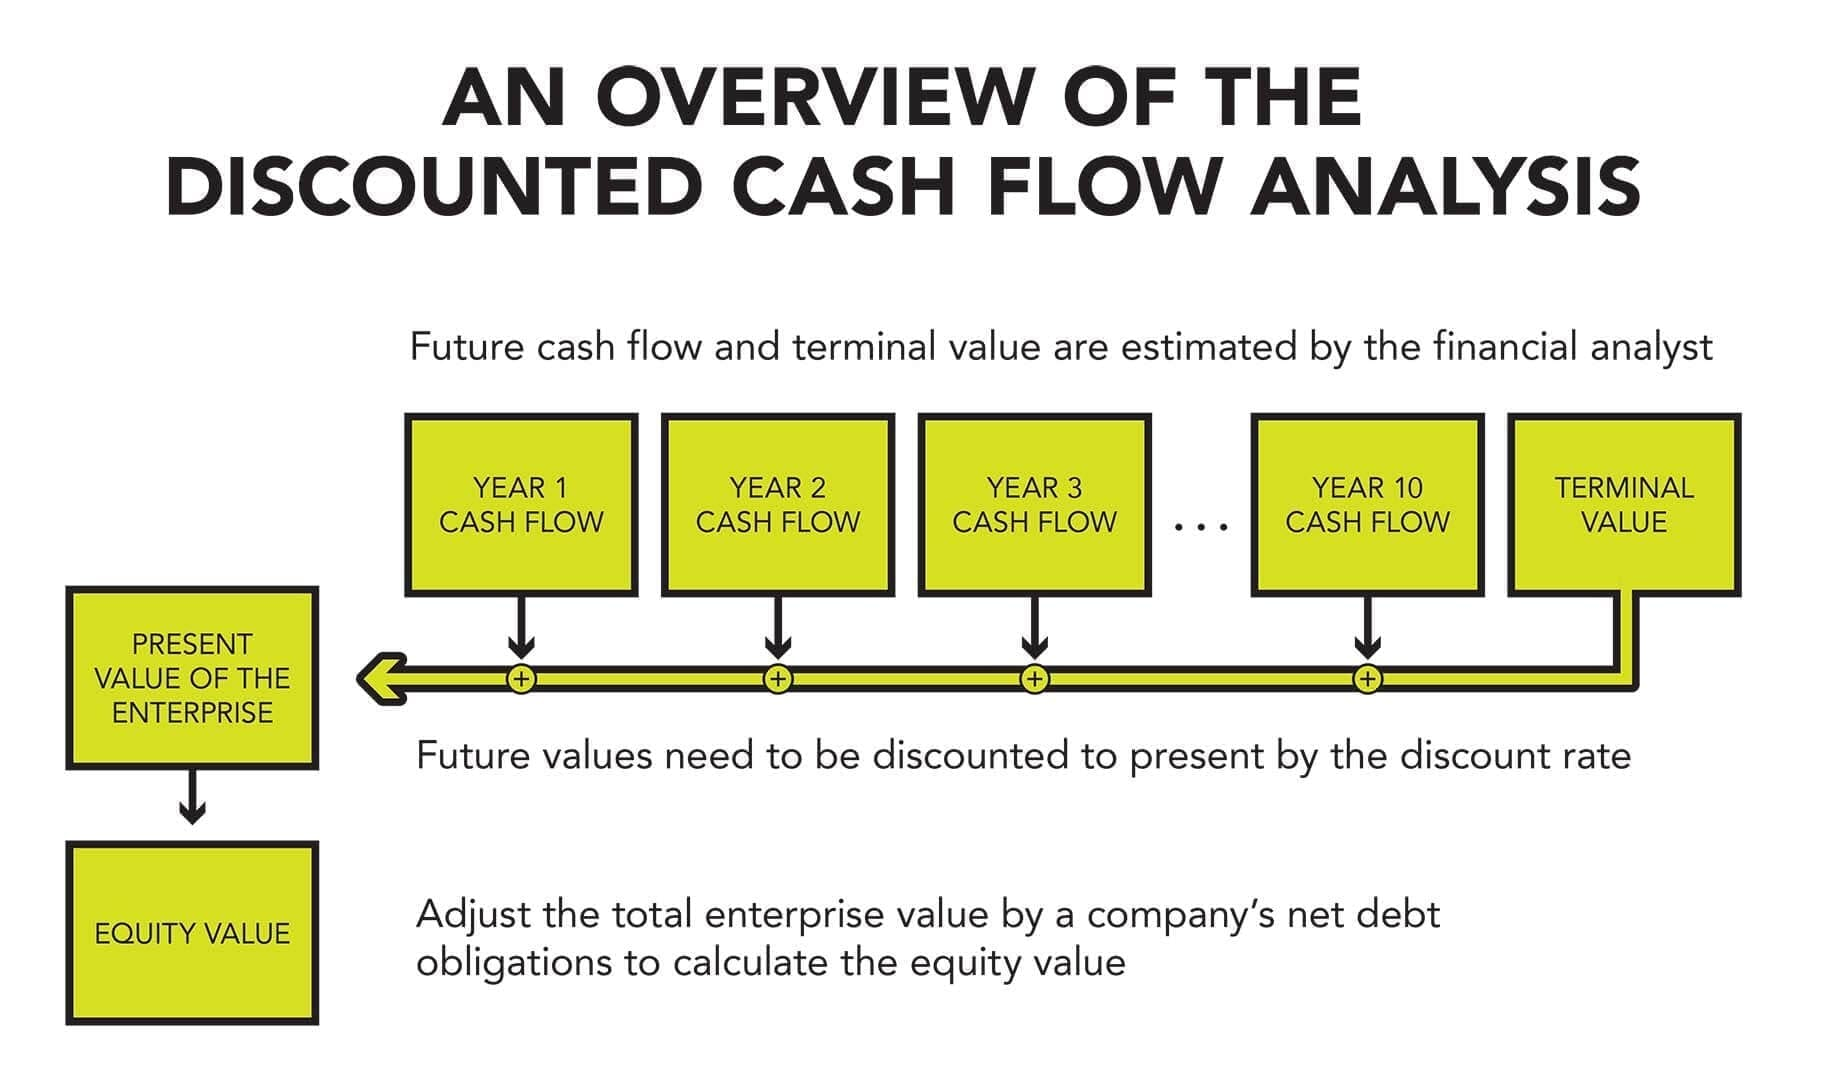 The discounted cash flow analysis is a complex, multistep calculation used to determine the value of a business.